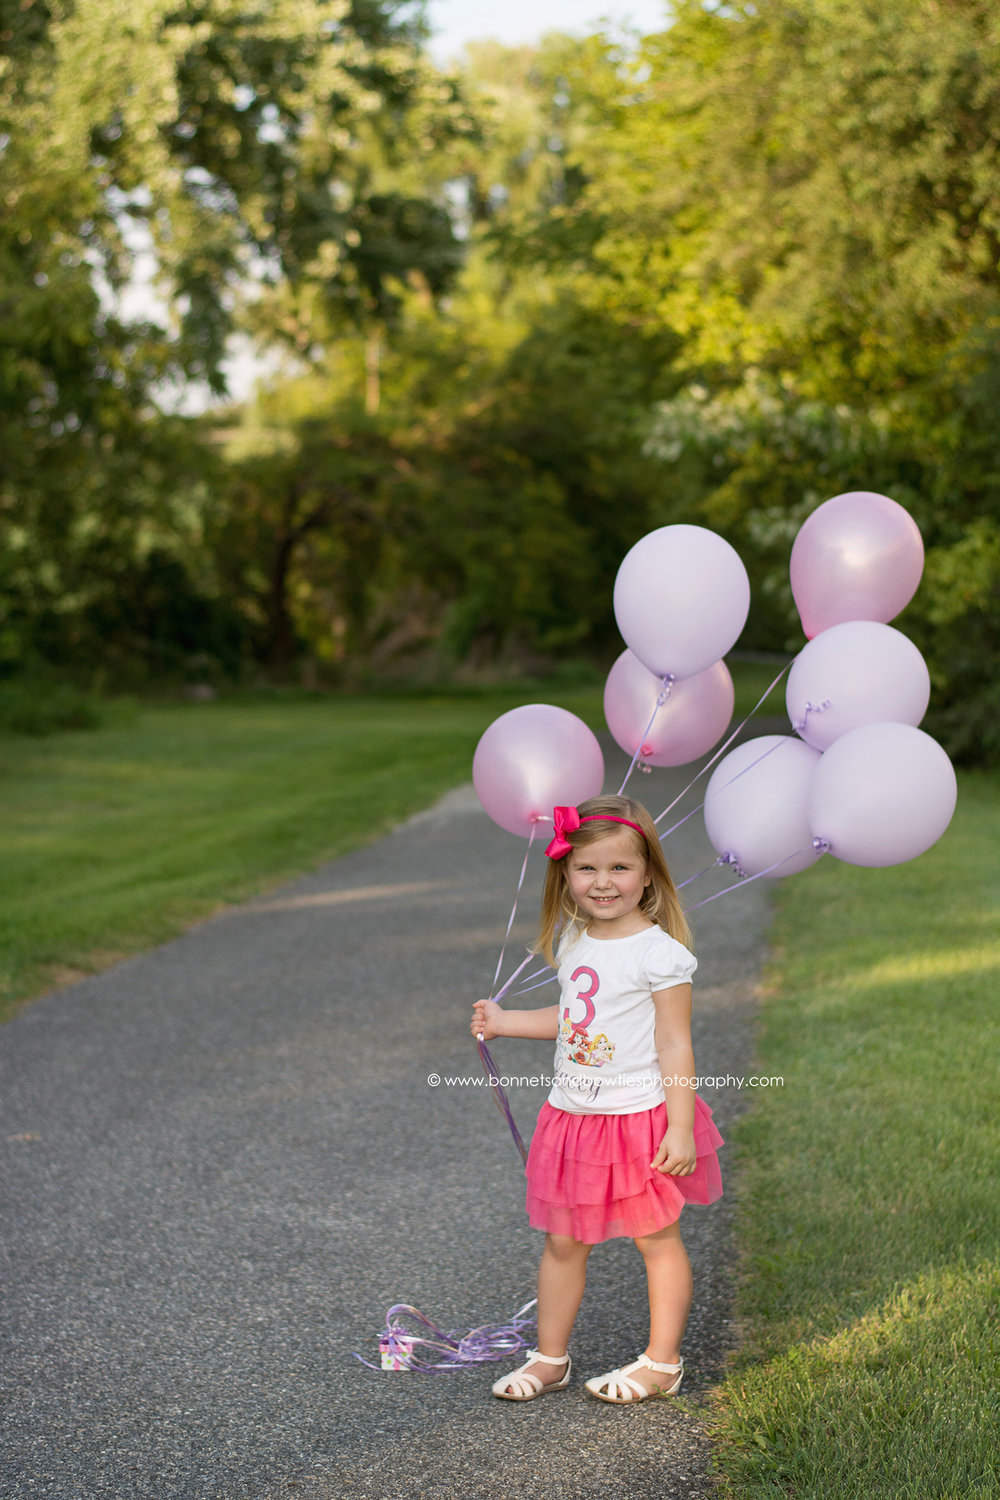 balloons-birthday-three-years-old